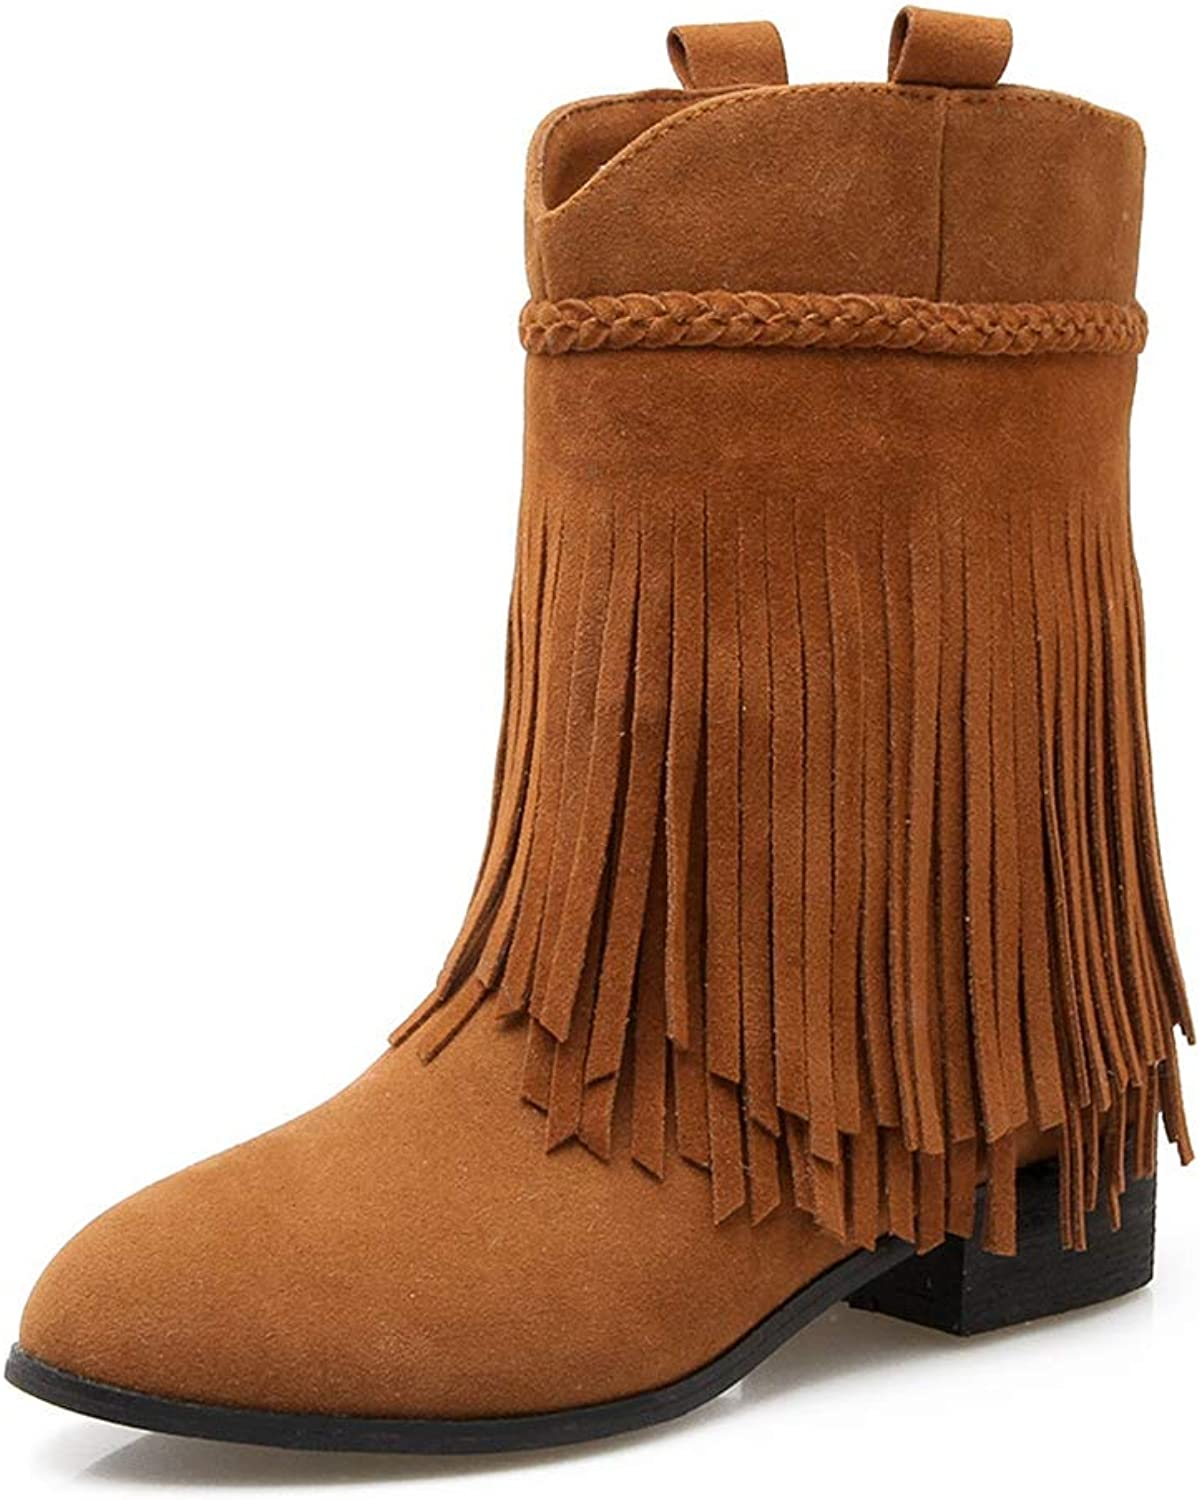 Kyle Walsh Pa Women's Tassel Boots Round Toe Square Heel Female Ankle Booties Plus Size Winter Flats shoes